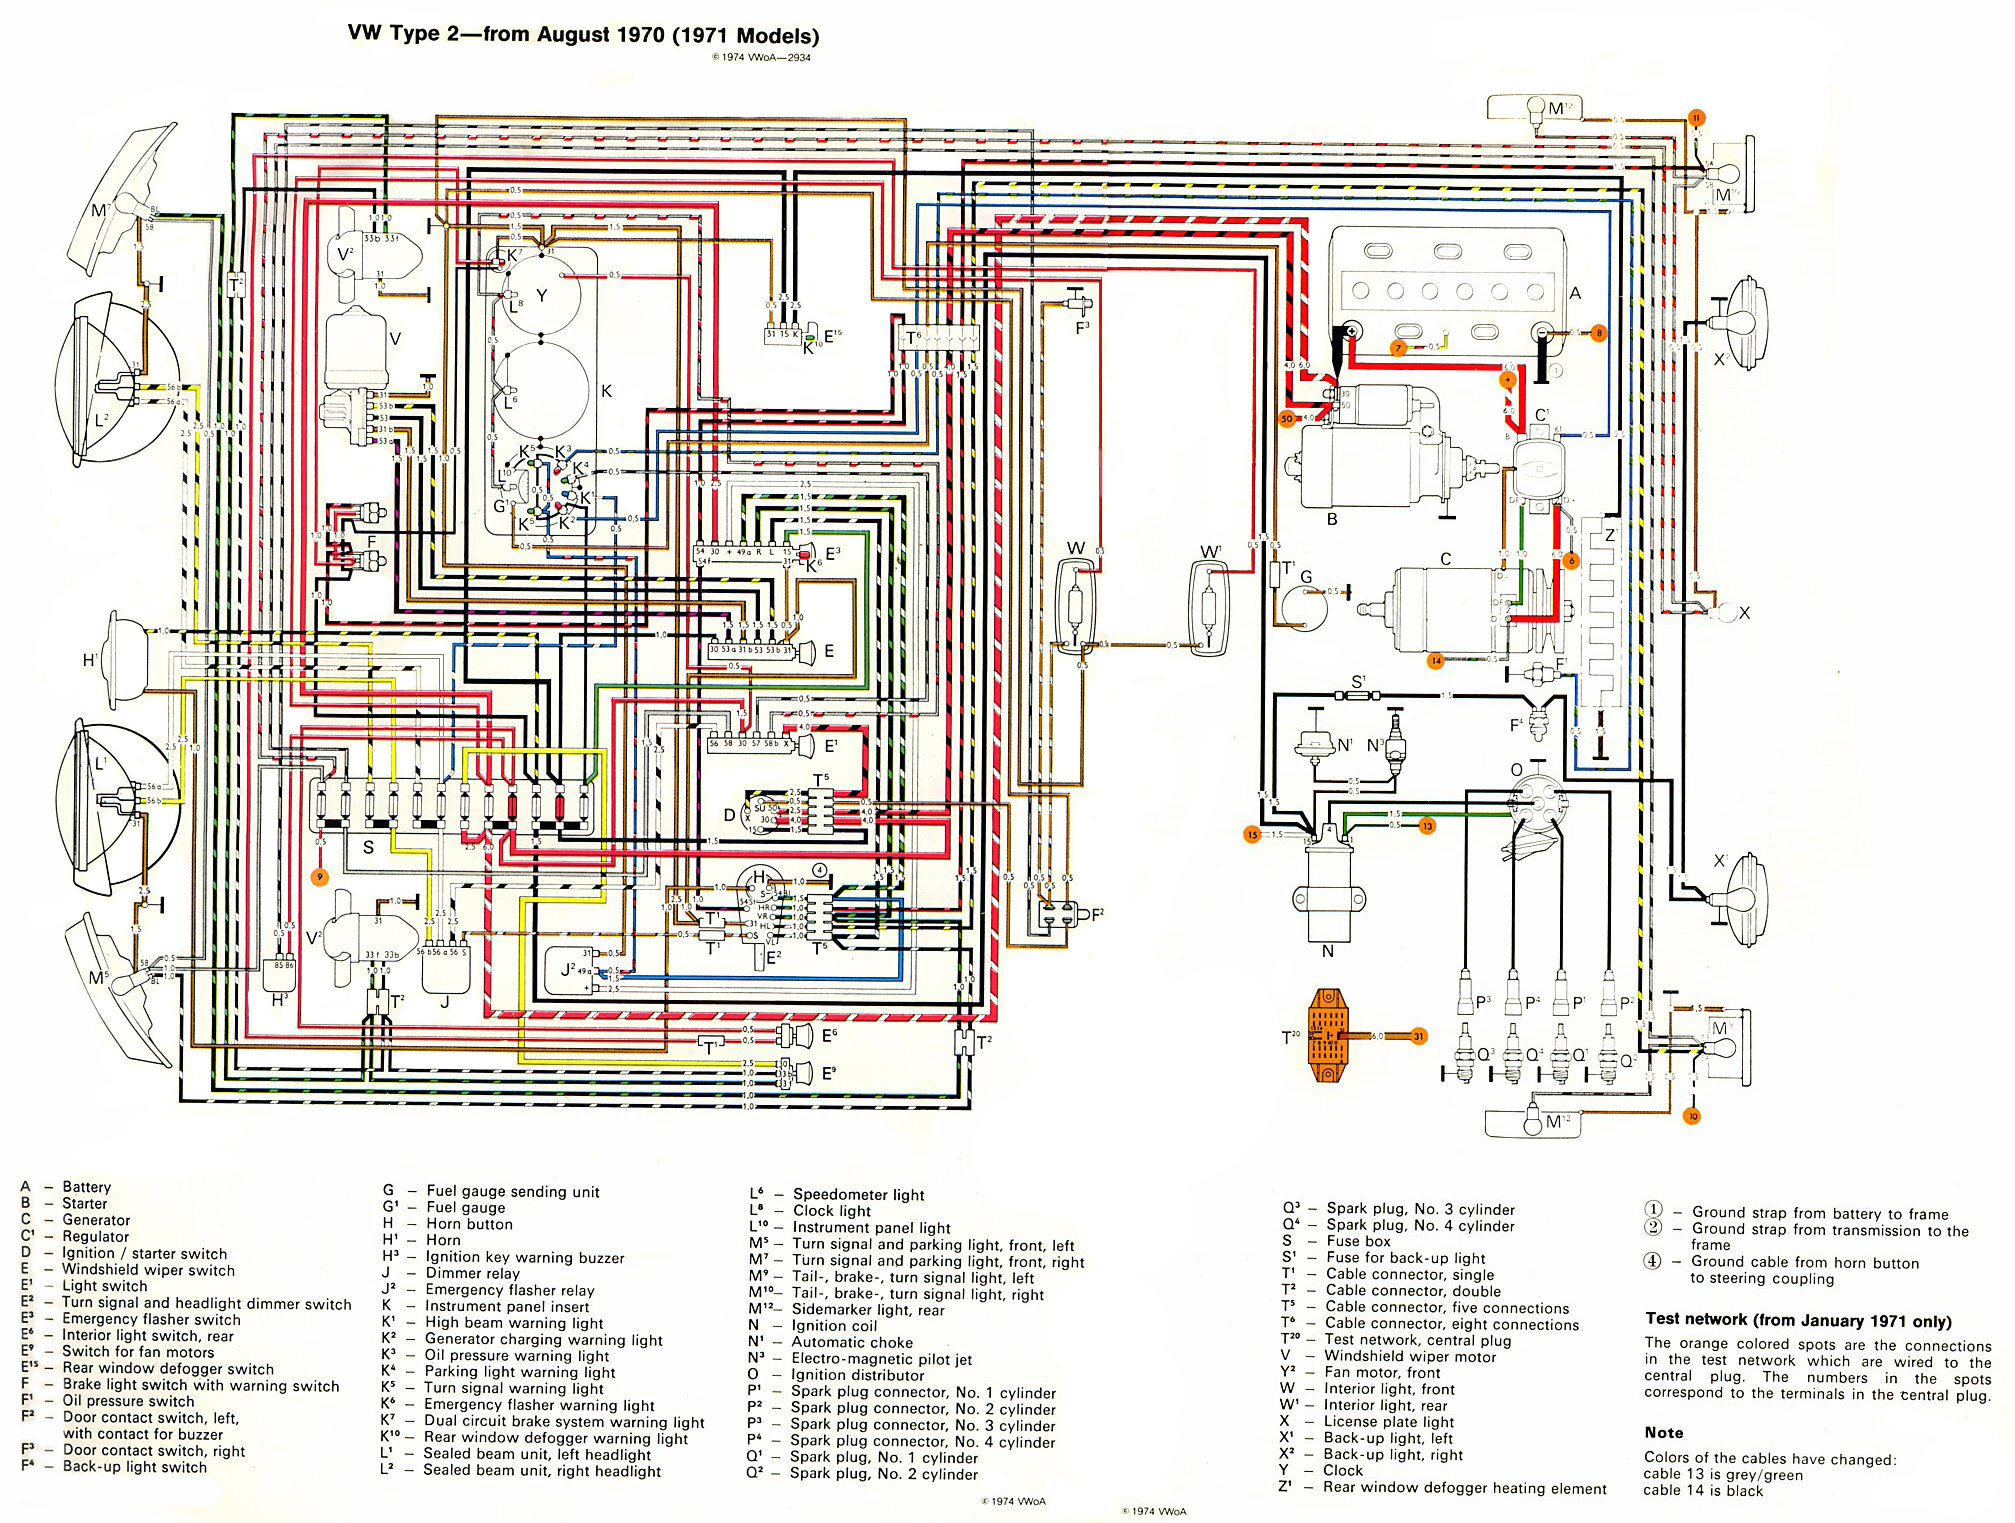 77 vw van wiring diagram 11 ulrich temme de \u2022wiring diagram for volkswagen van best wiring library rh 136 ilahidinle be vw headlight switch wiring